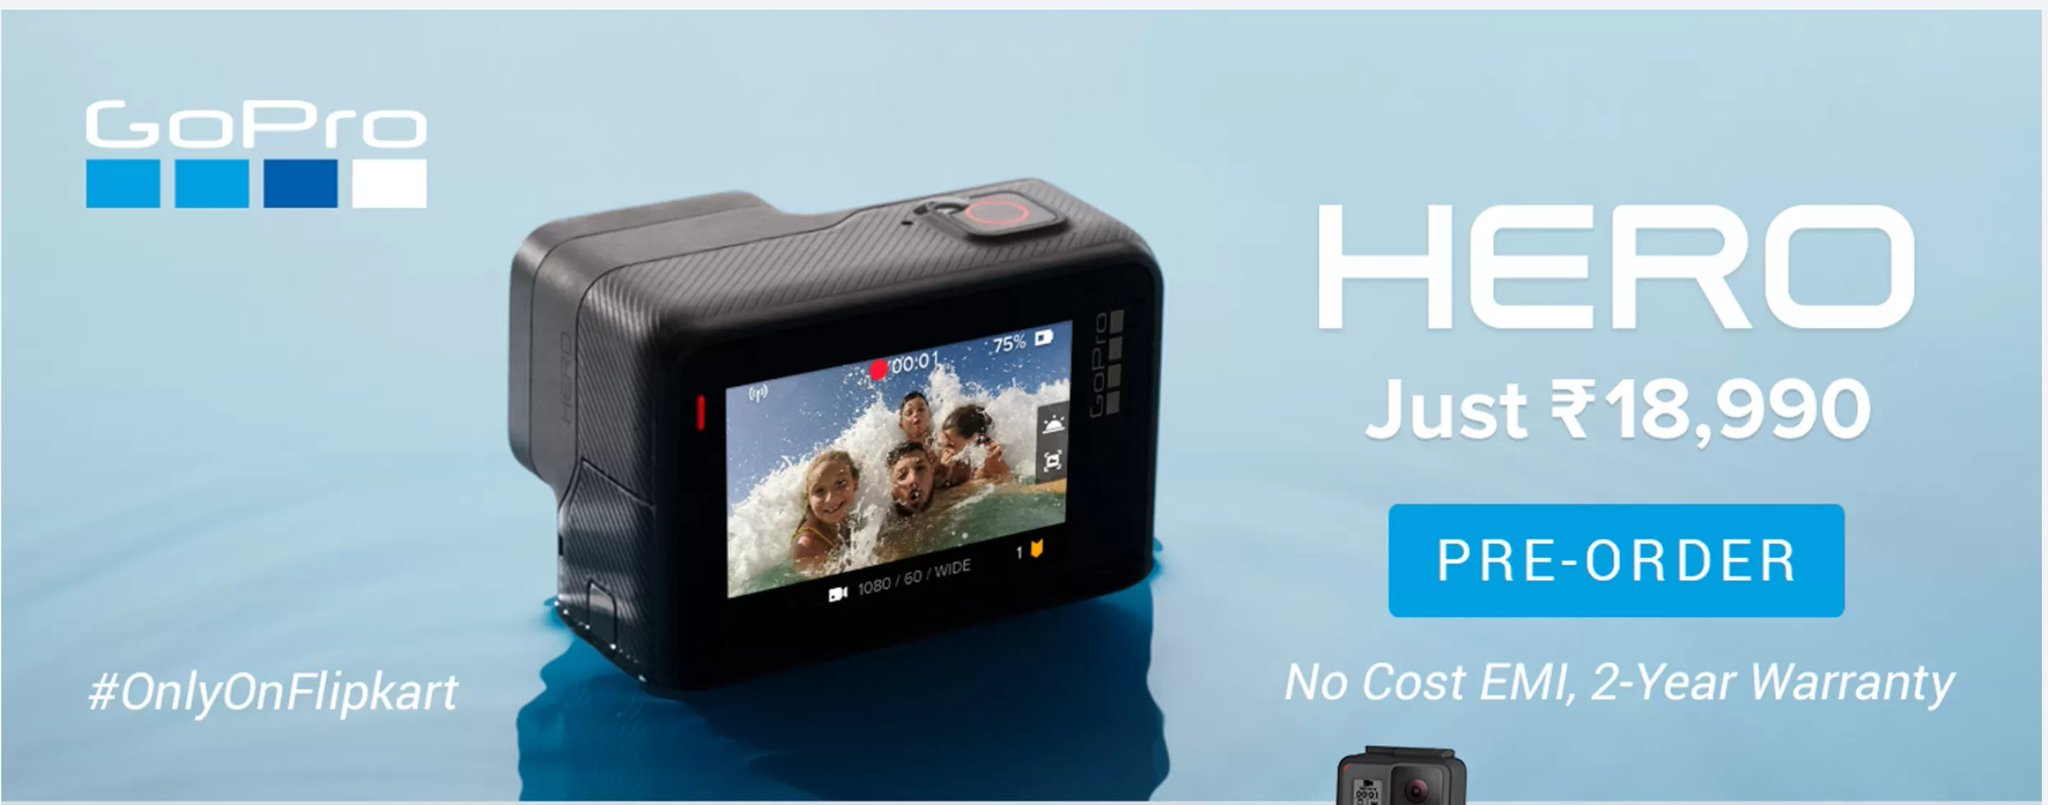 GoPro HERO sports action camera Features, Specifications, Price and Release Date